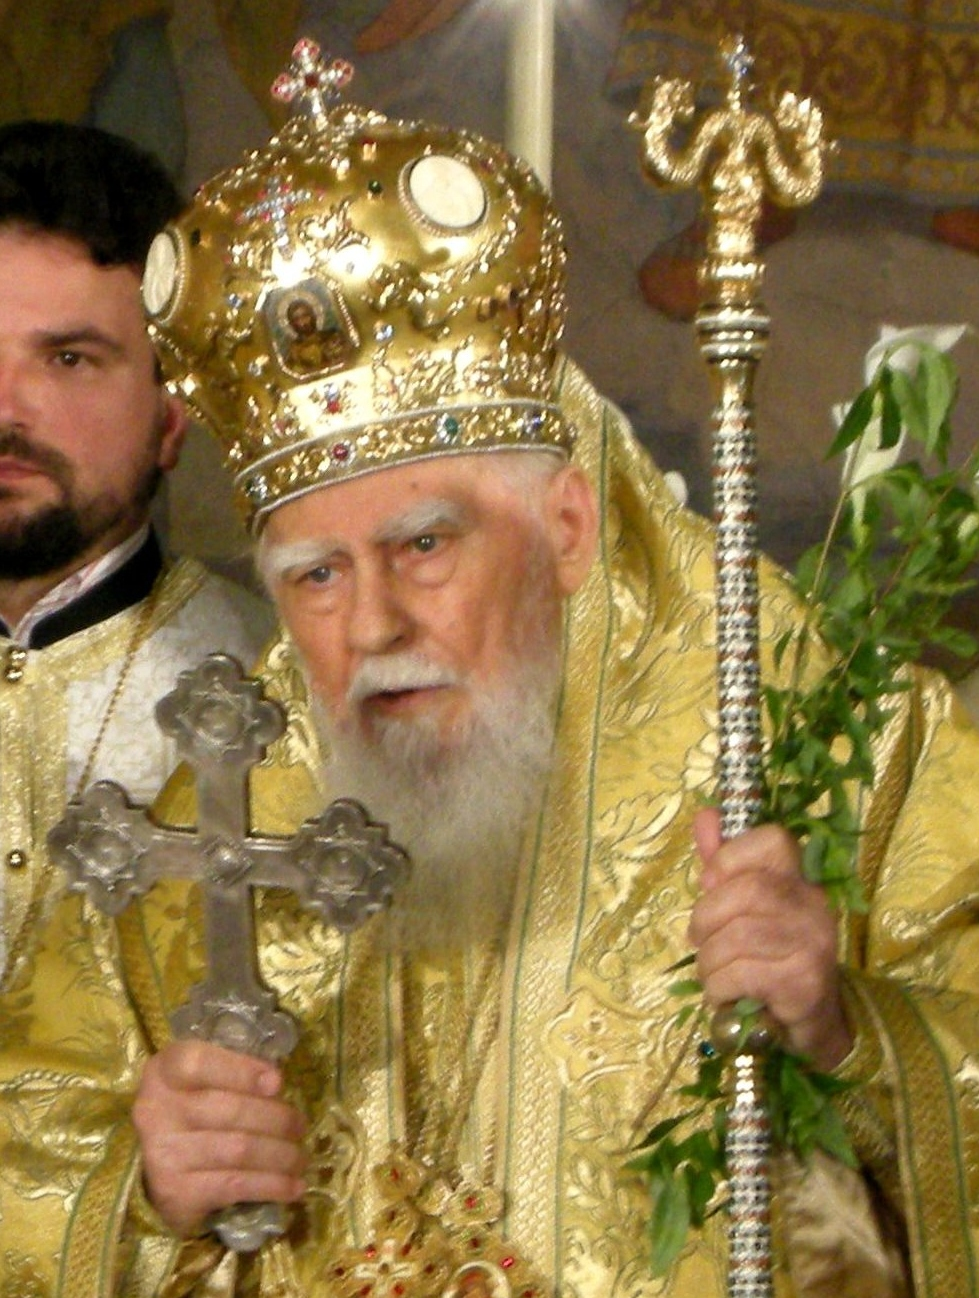 How layman should address the orthodox spiritual clergy according to his holiness patriarch of bulgaria maxim m4hsunfo